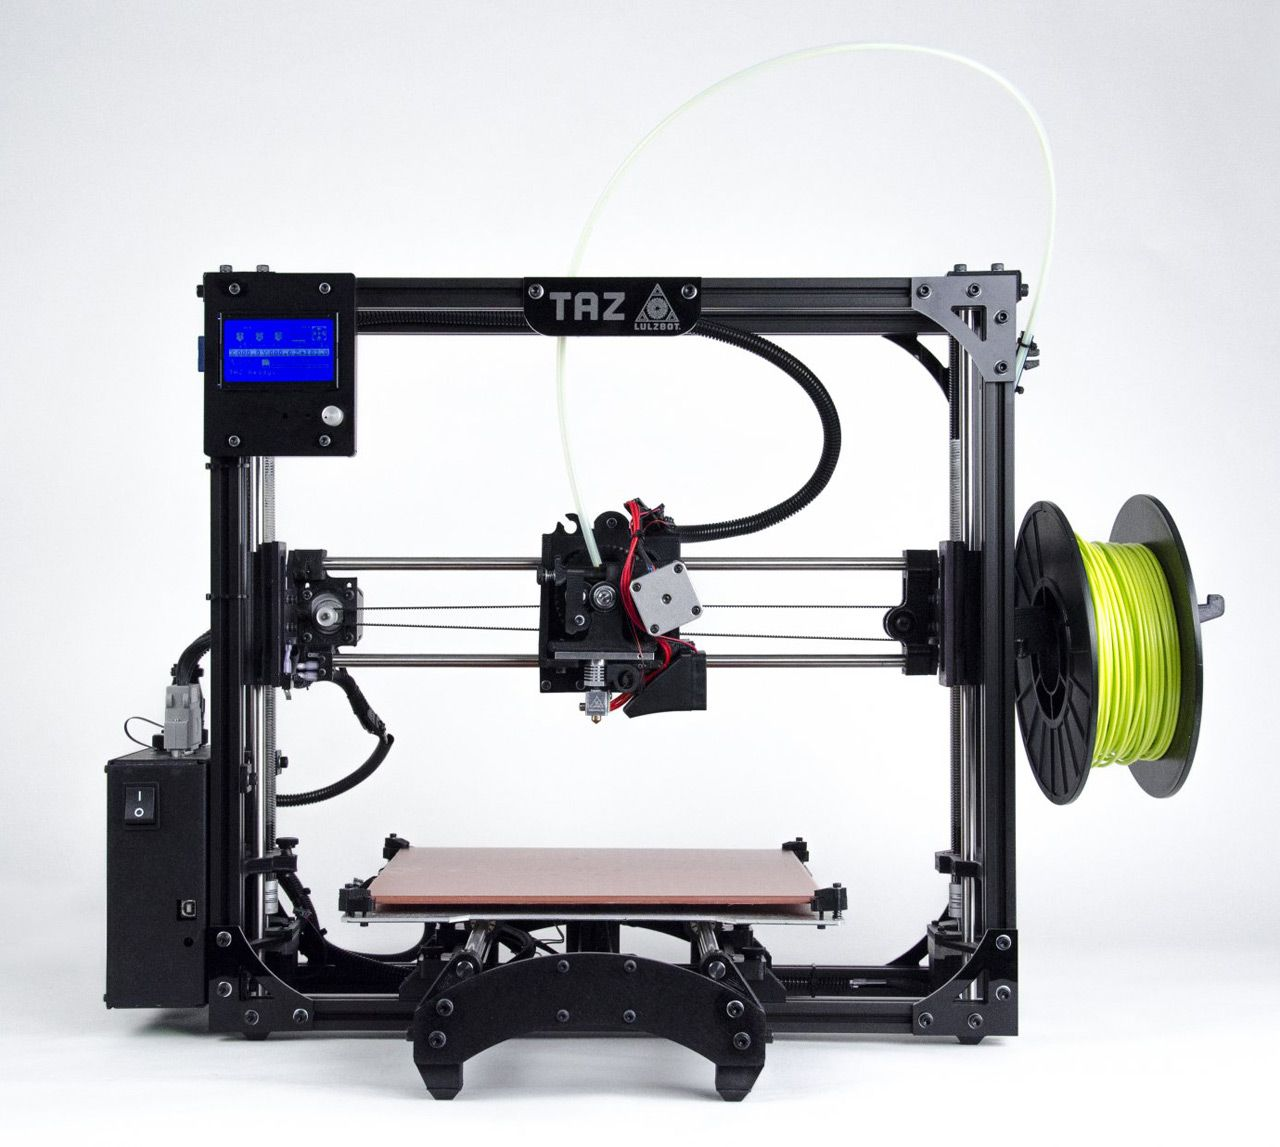 LulzBot TAZ 5 3D Printer | High Performance Desktop Printer - one of the best and most flexible 3d printers available, just arrived at PrinterPlayground.com. Shop Now!